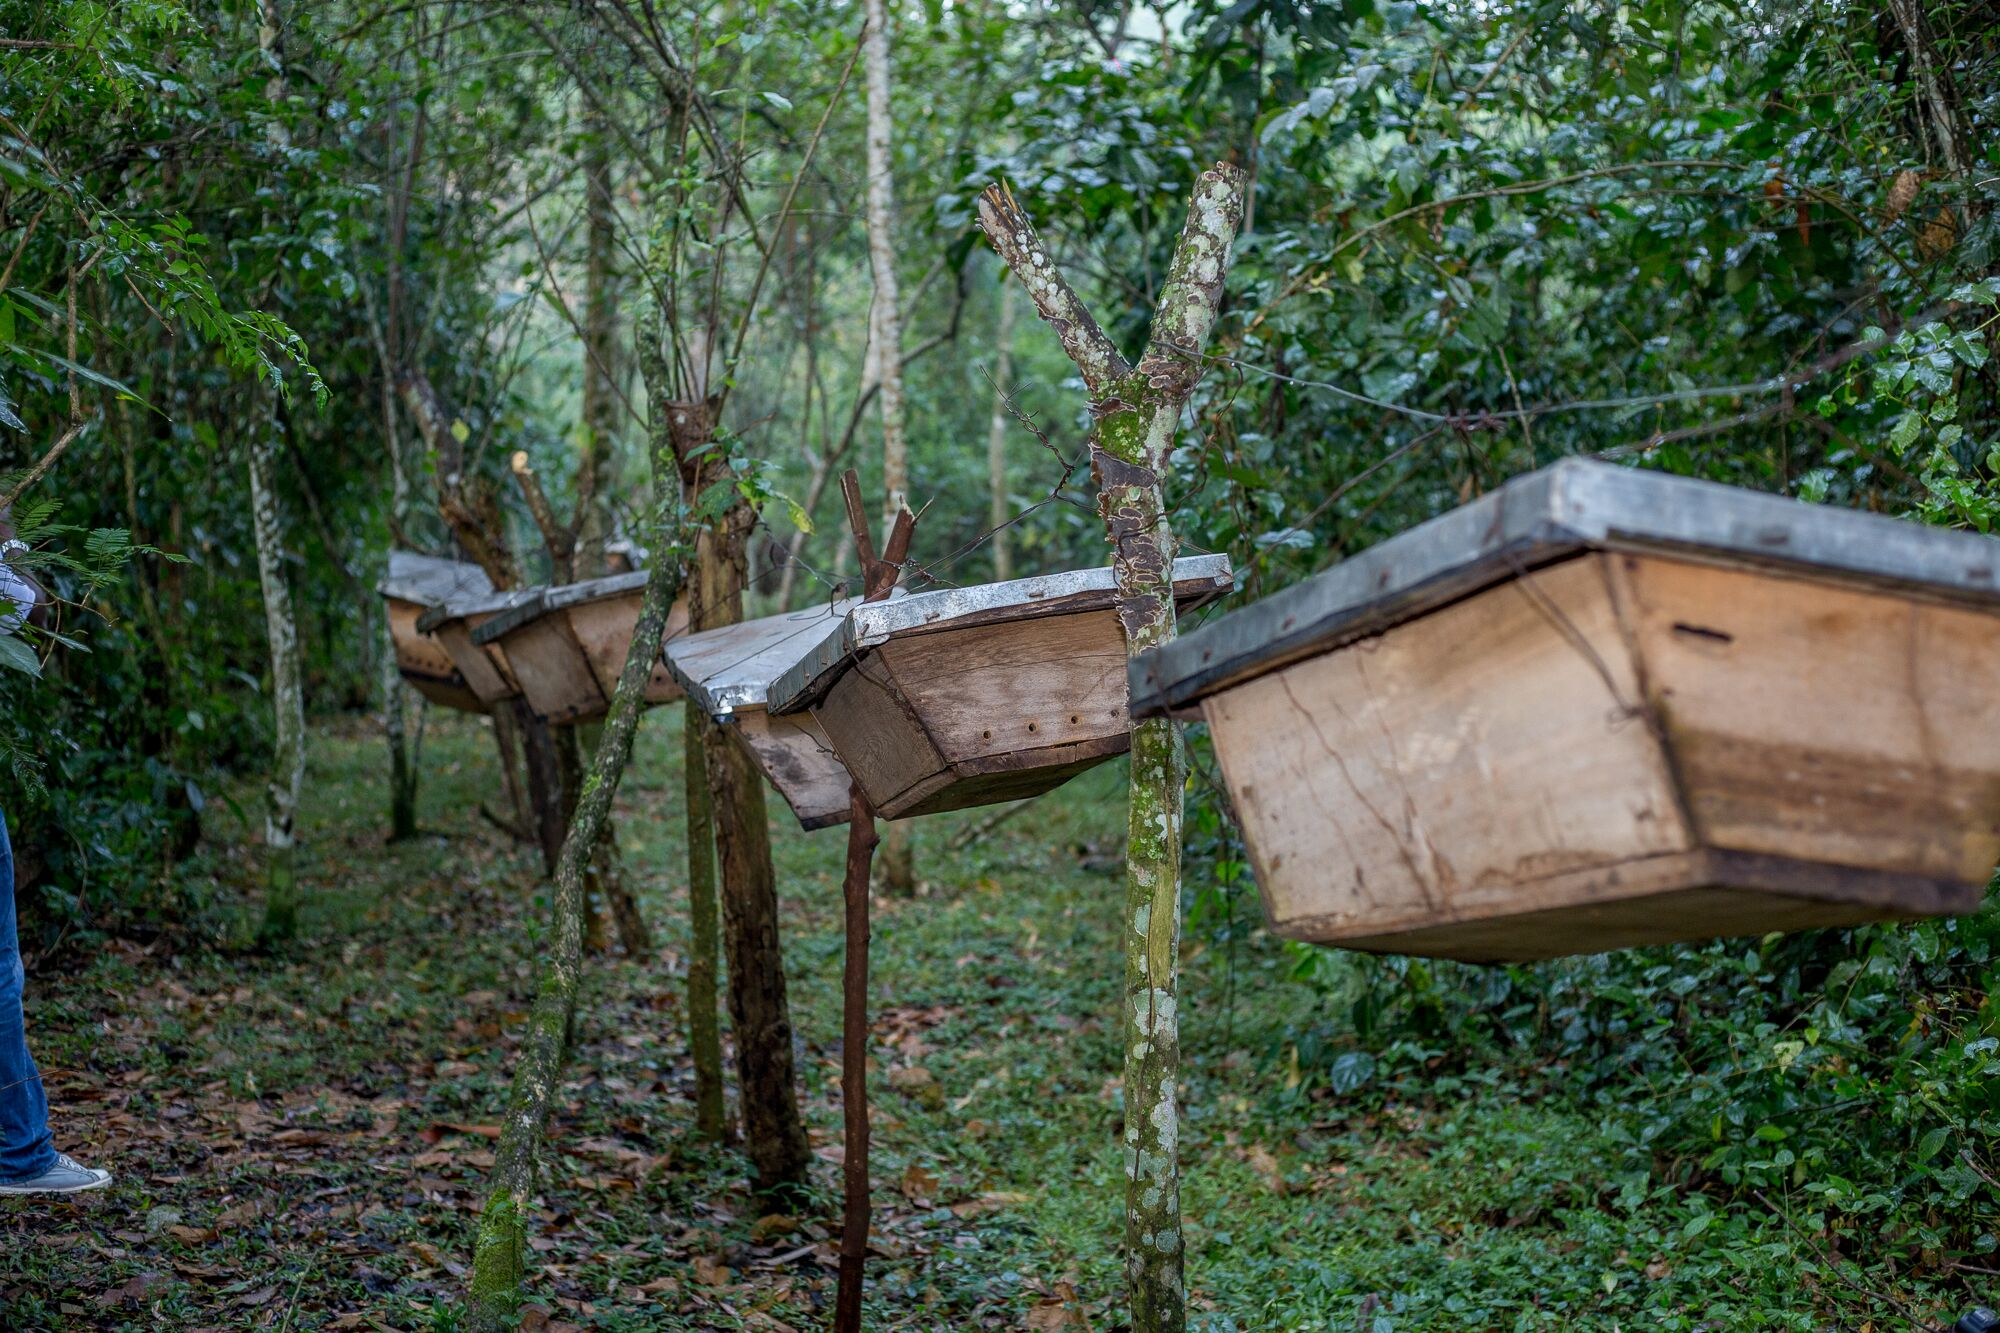 In Kamwenge, a Bee Keeping Project is Curbing Human-Wildlife